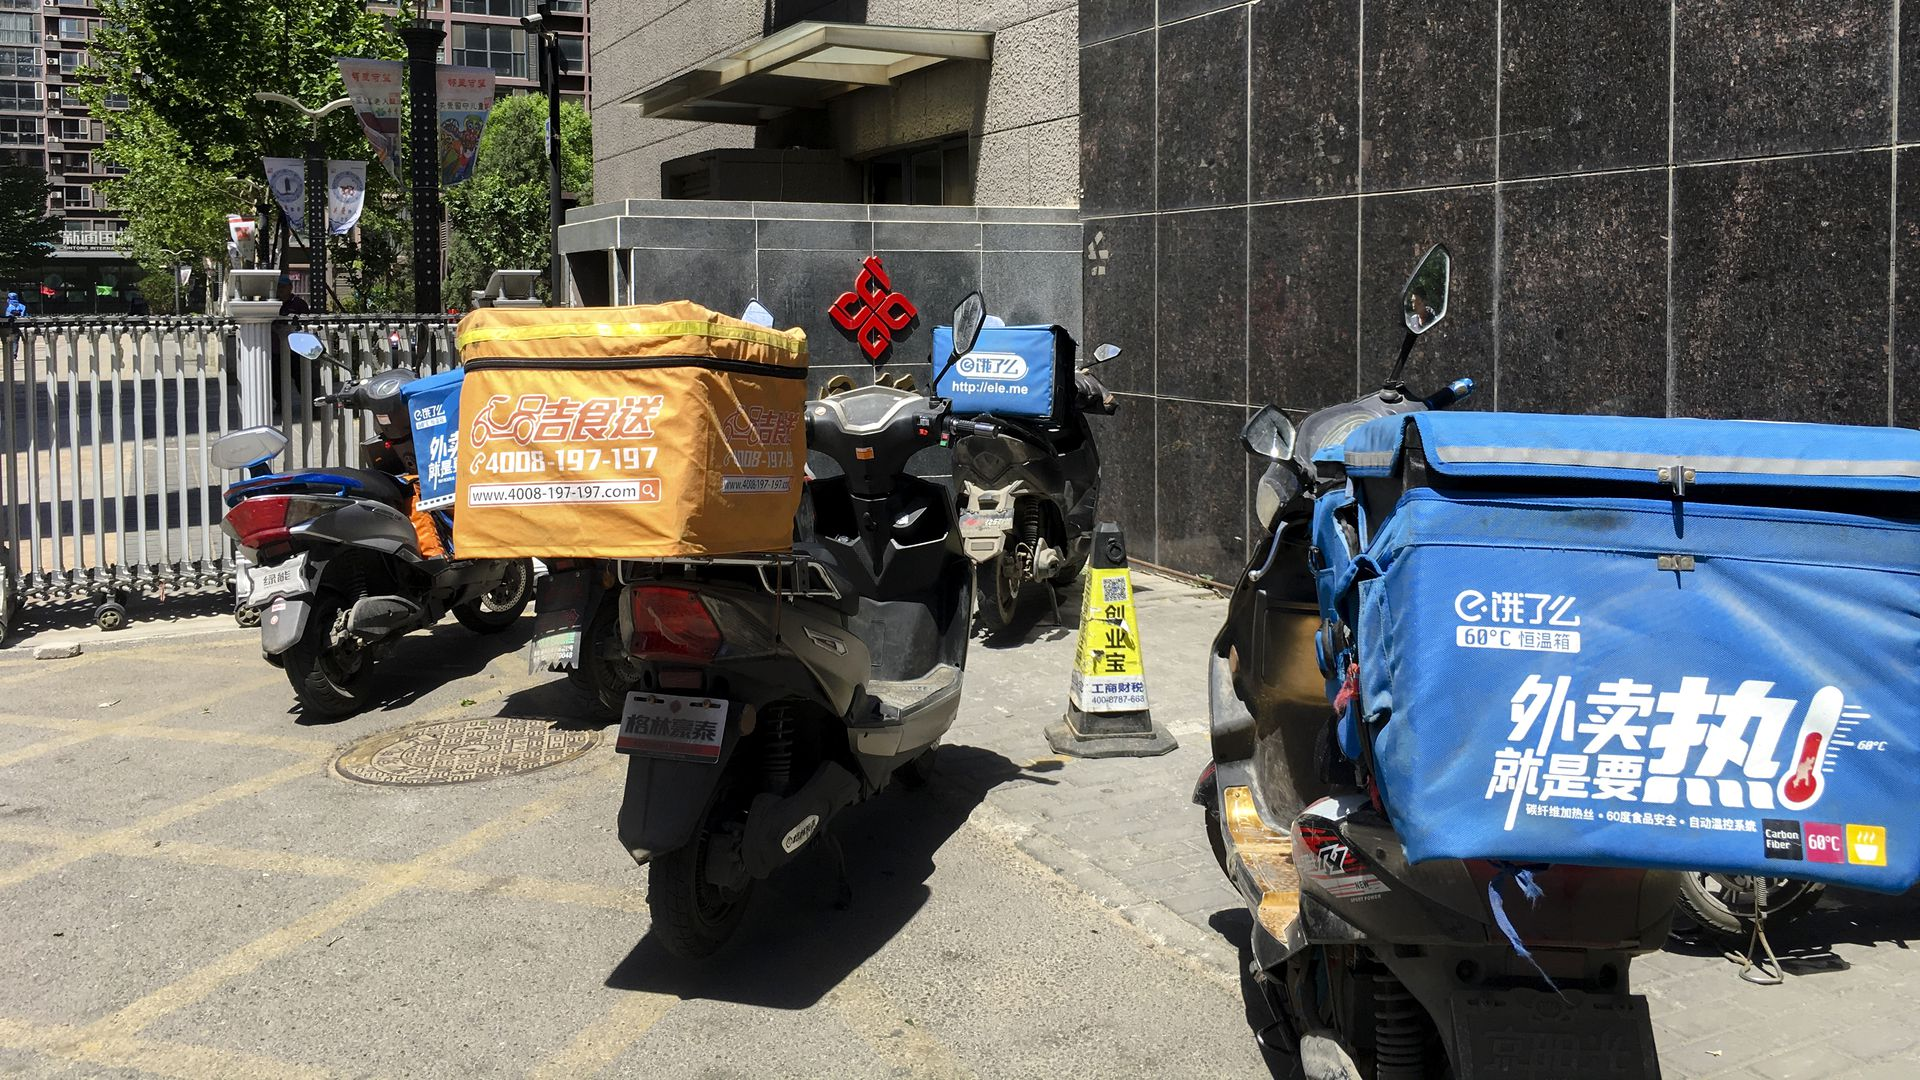 Motorcycles with food delivery packages parked in Beijing